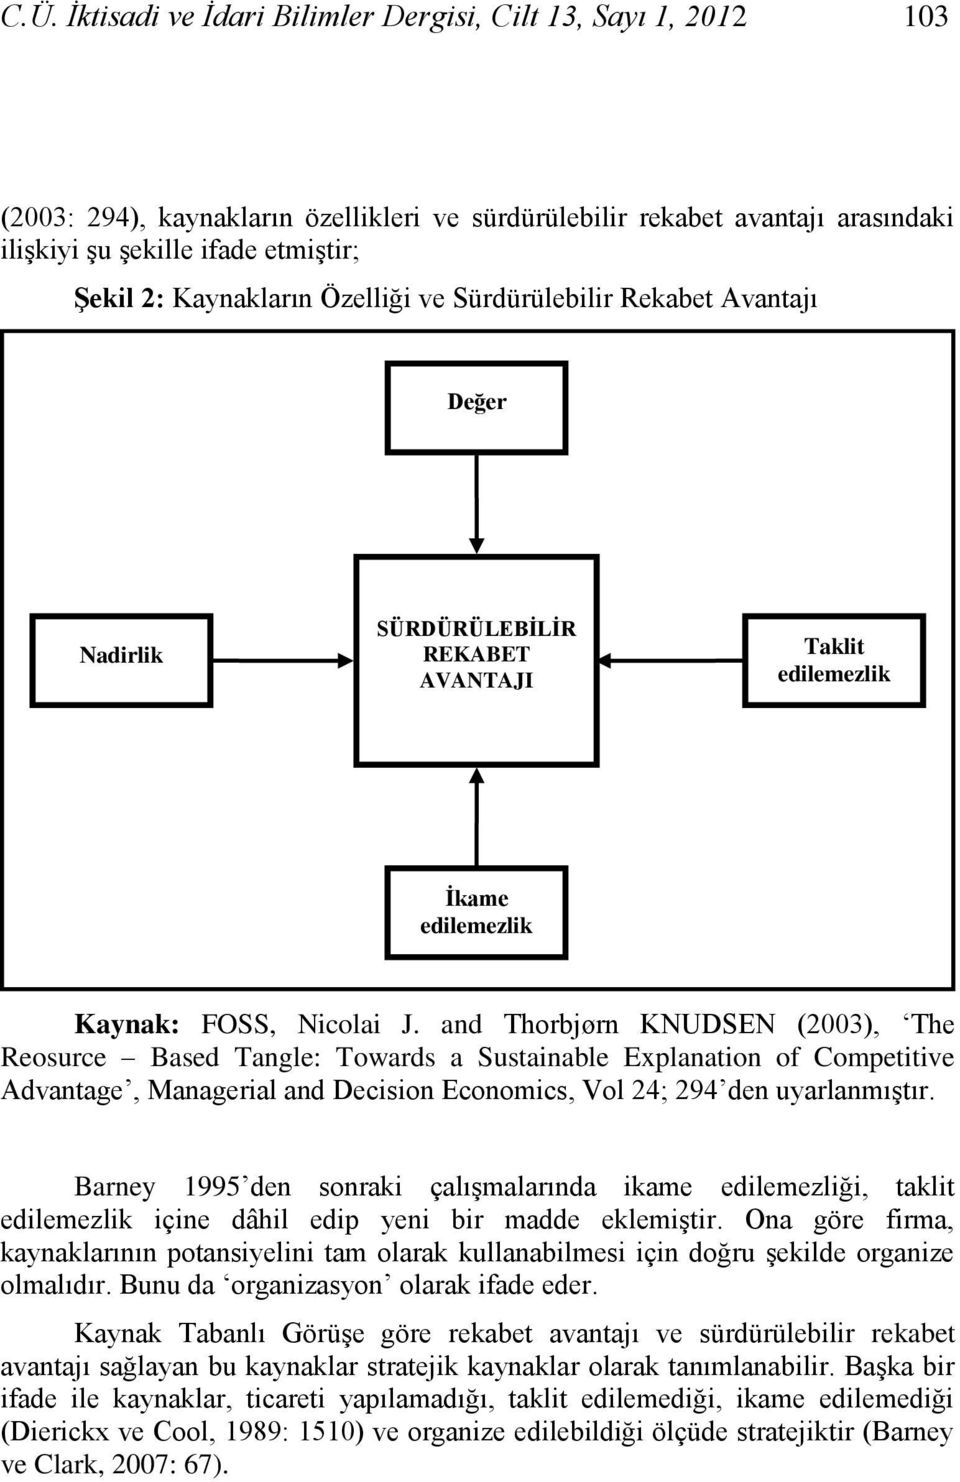 and Thorbjørn KNUDSEN (2003), The Reosurce Based Tangle: Towards a Sustainable Explanation of Competitive Advantage, Managerial and Decision Economics, Vol 24; 294 den uyarlanmıştır.